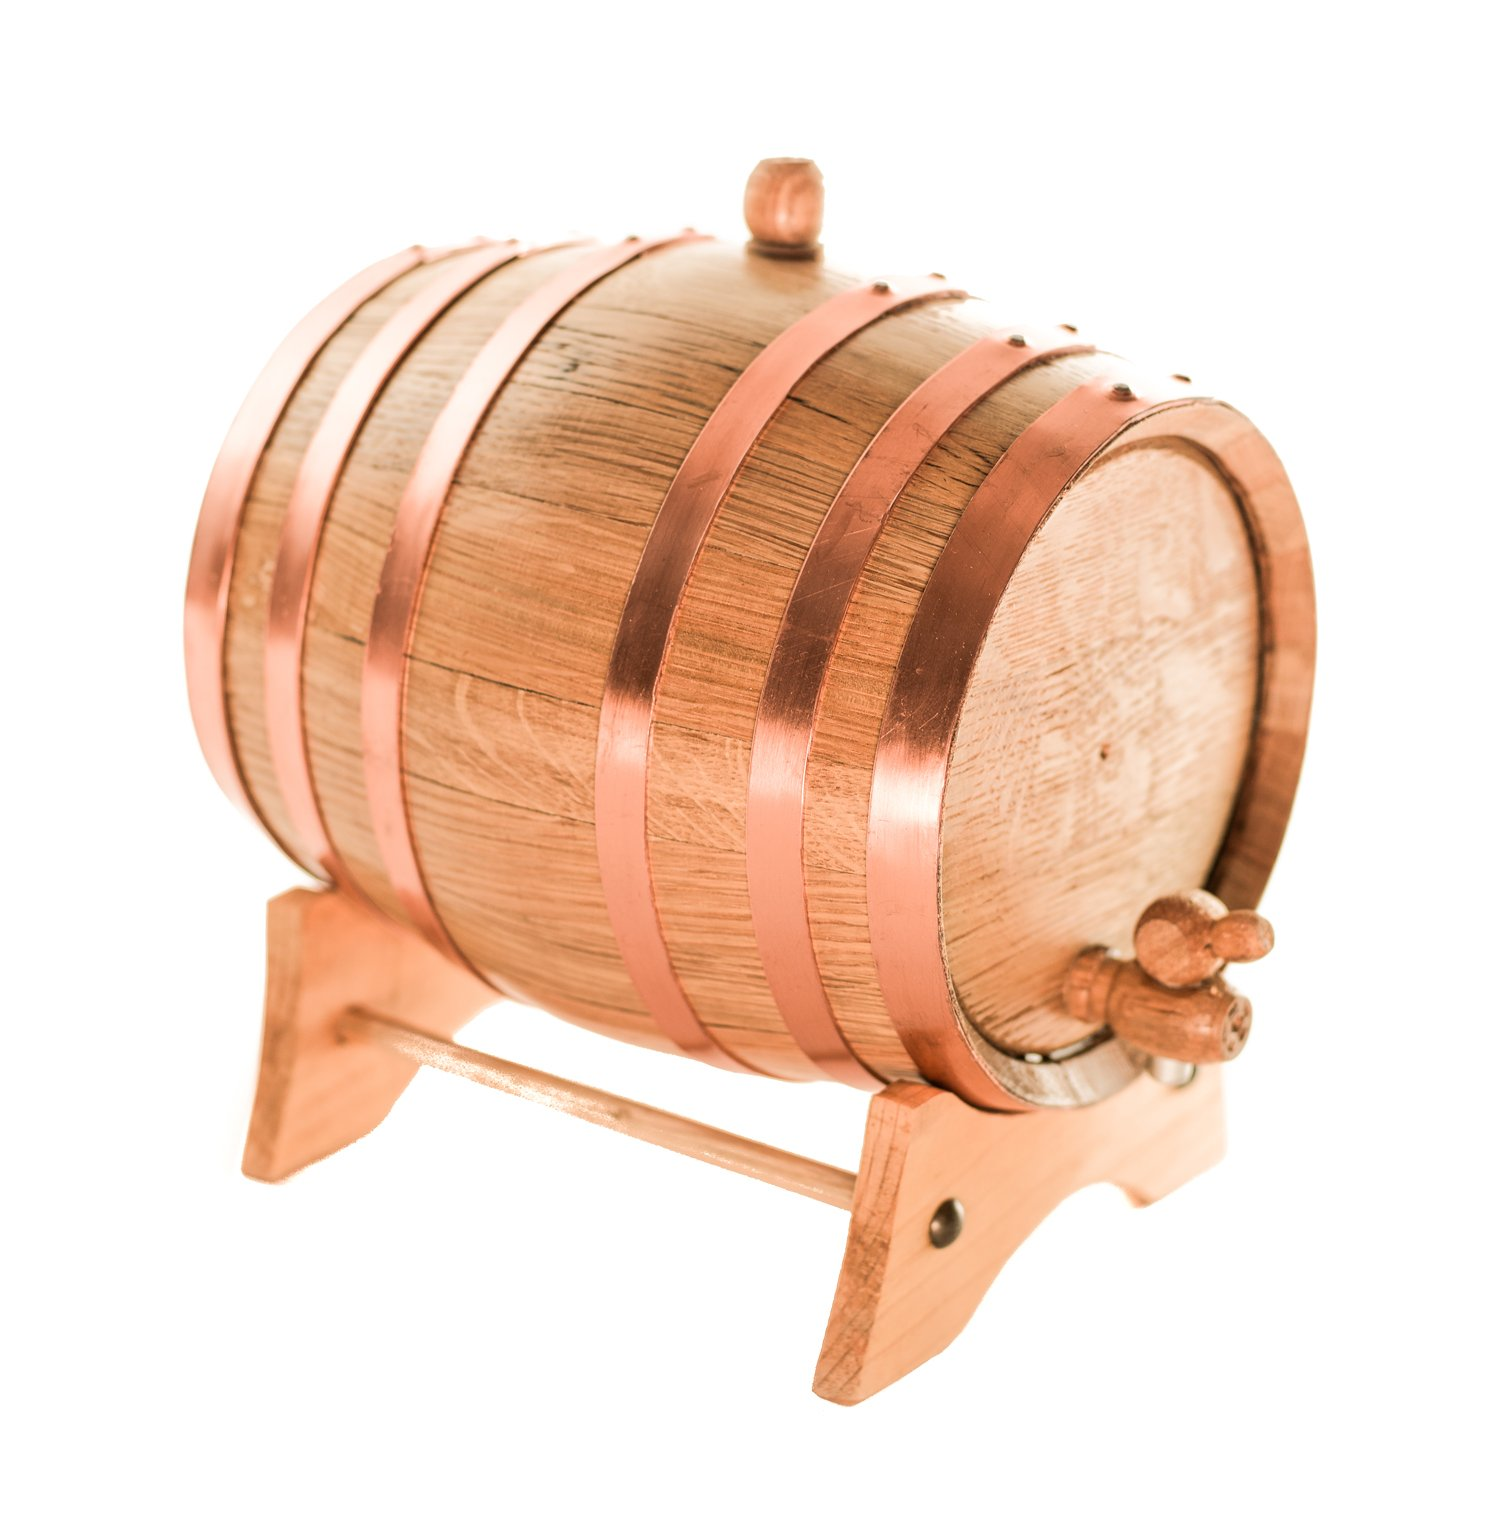 American Oak Aging Barrel | Handcrafted using American White Oak | Age your own Whiskey, Beer, Wine, Bourbon, Tequila, Hot Sauce & More (5 Liter or 1.32 Gallon, Copper Hoops)